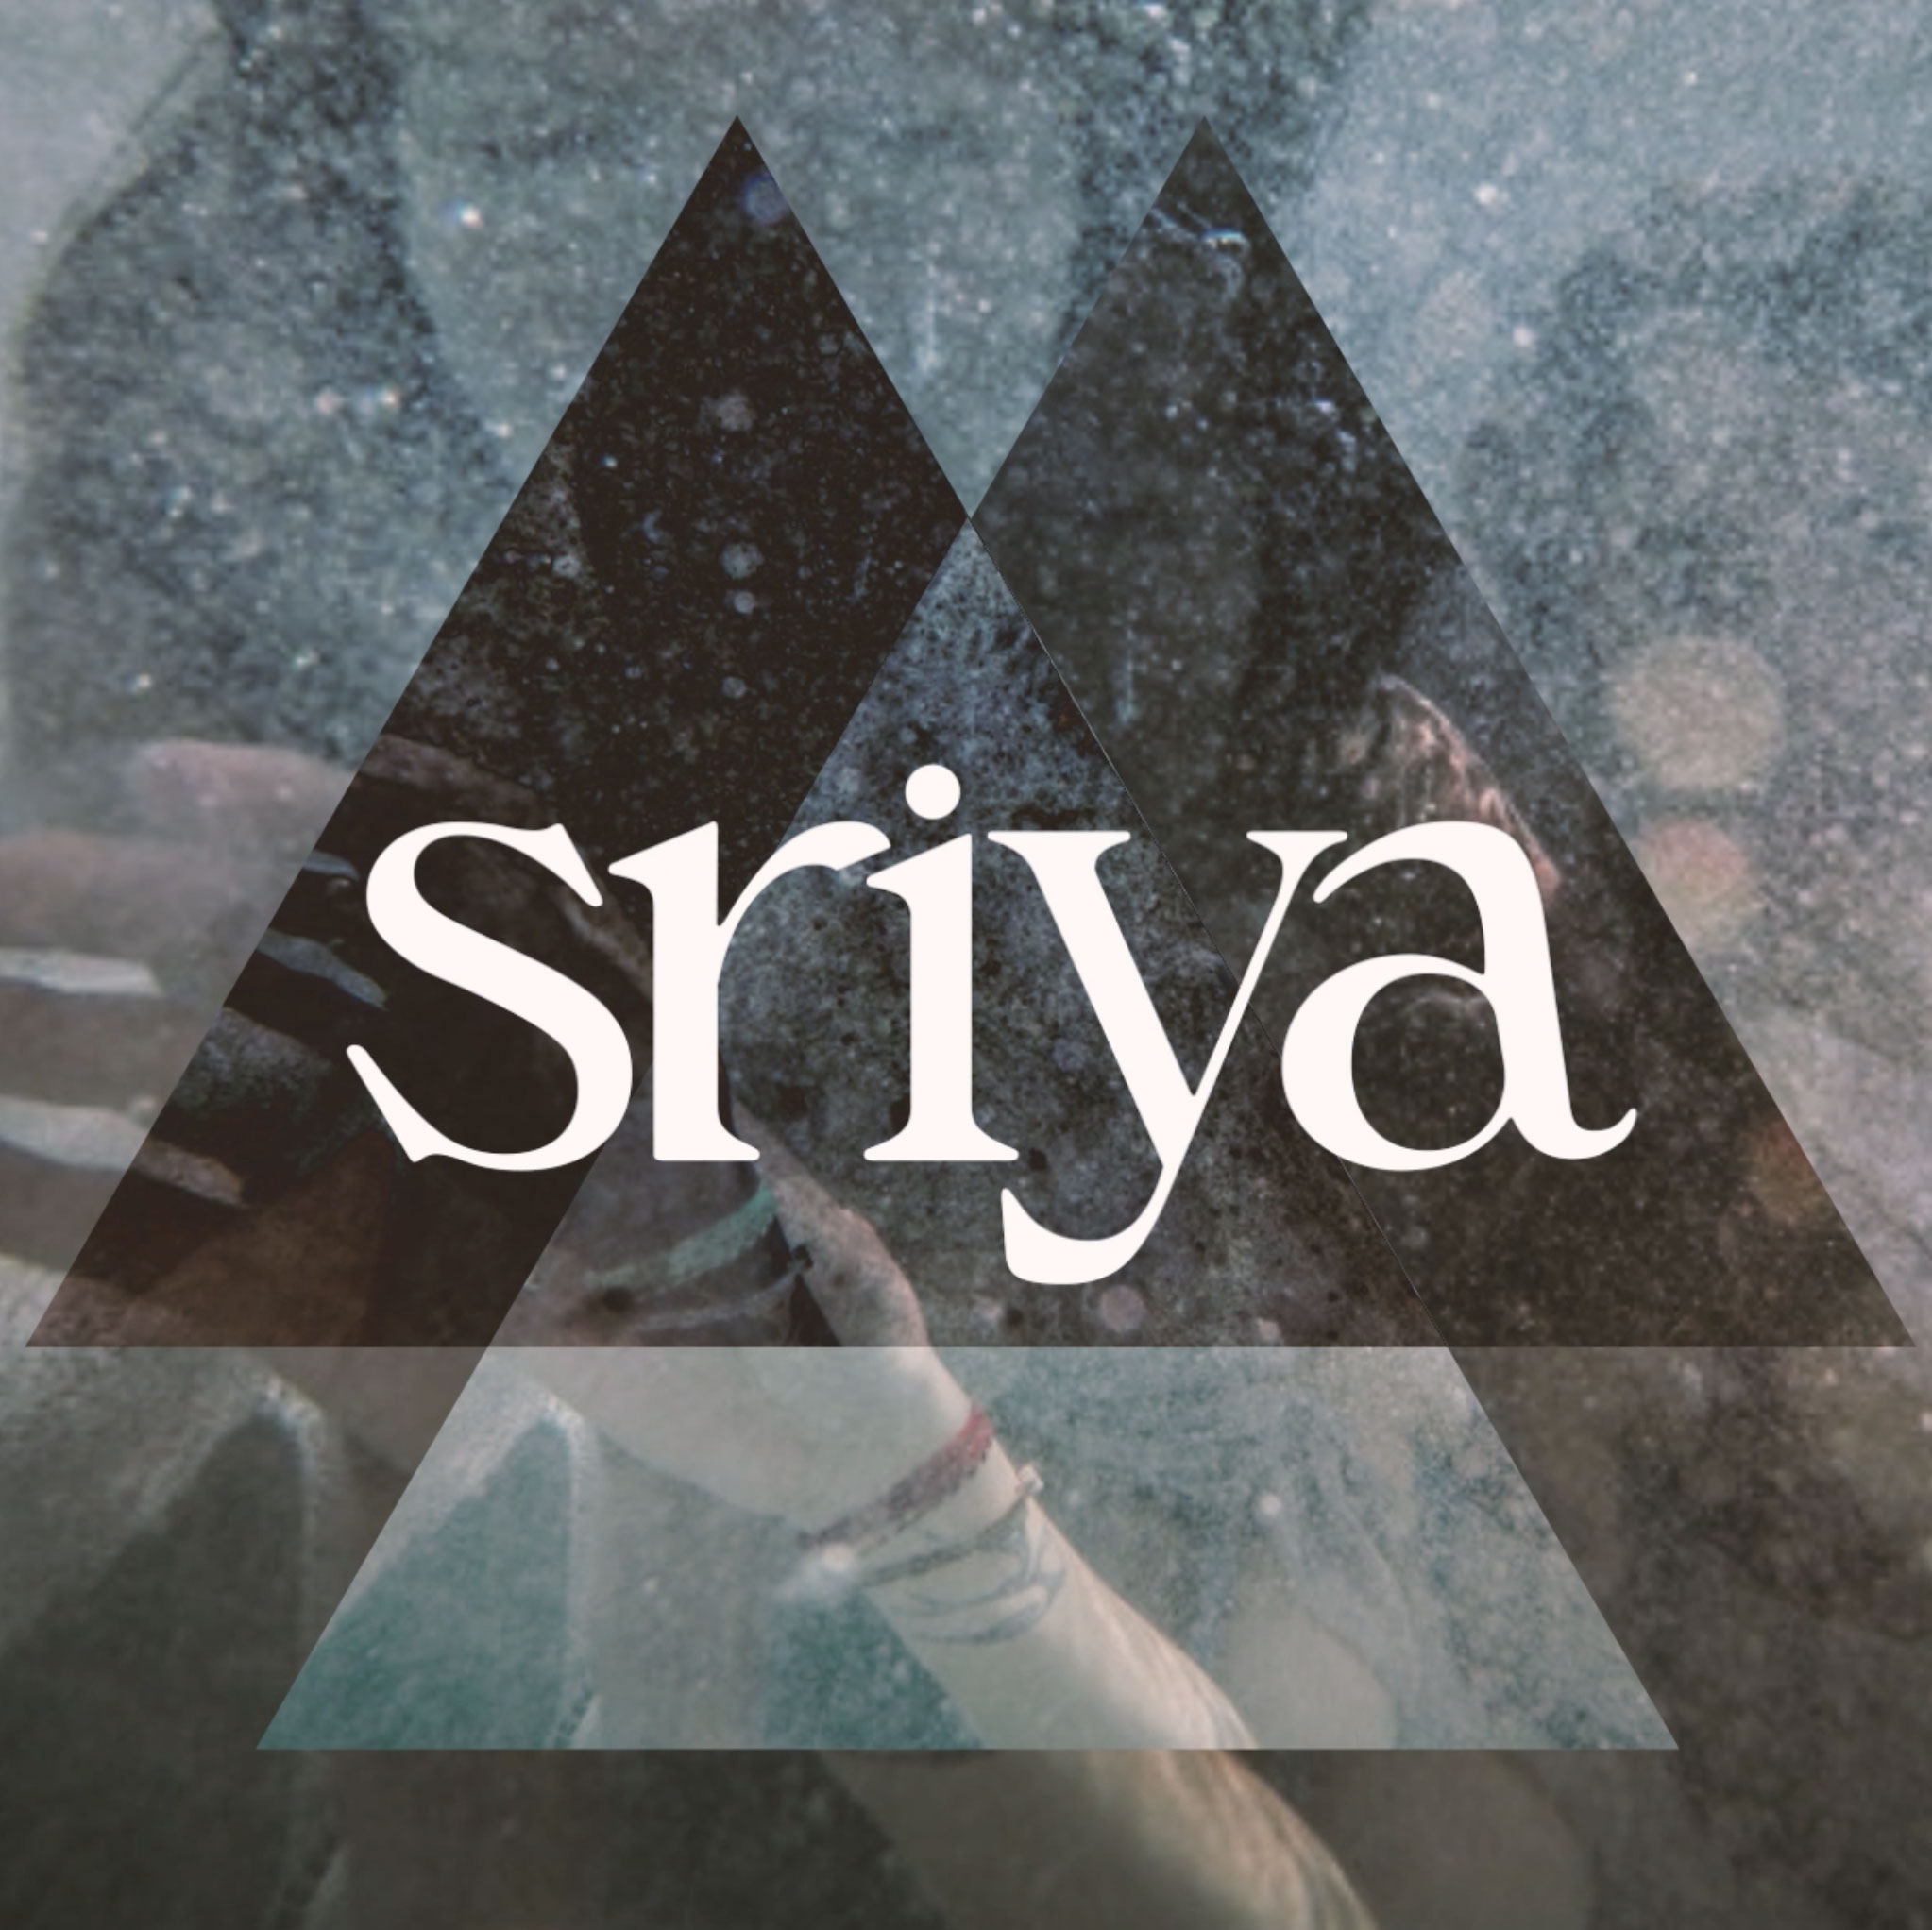 sriya - Is the spontaneously journey of two voices that become many. Formed with deep intention and devotion to song as a Universal language, and accessing timelines future and past, the flow takes singers SriMati and Riya on a unique adventure where voices begin in individuality, harmoniously answering the call, traveling into the unknown where in a field of sound they become one interchangeably. As the many voices create a sound bath of cellular nourishment where the tones communicate with the Self and nature throughout the multi-verse, the listener has the invitation to sing along and add their tones to this offering. Or simply melt into the field and allow the frequency to heal and transform you in her embrace. This sound healing experience is 21 minutes. It can be utilized in solo or group settings, yoga classes, meditations and relaxation. Please listen with headphones or great speakers to get the full effect.